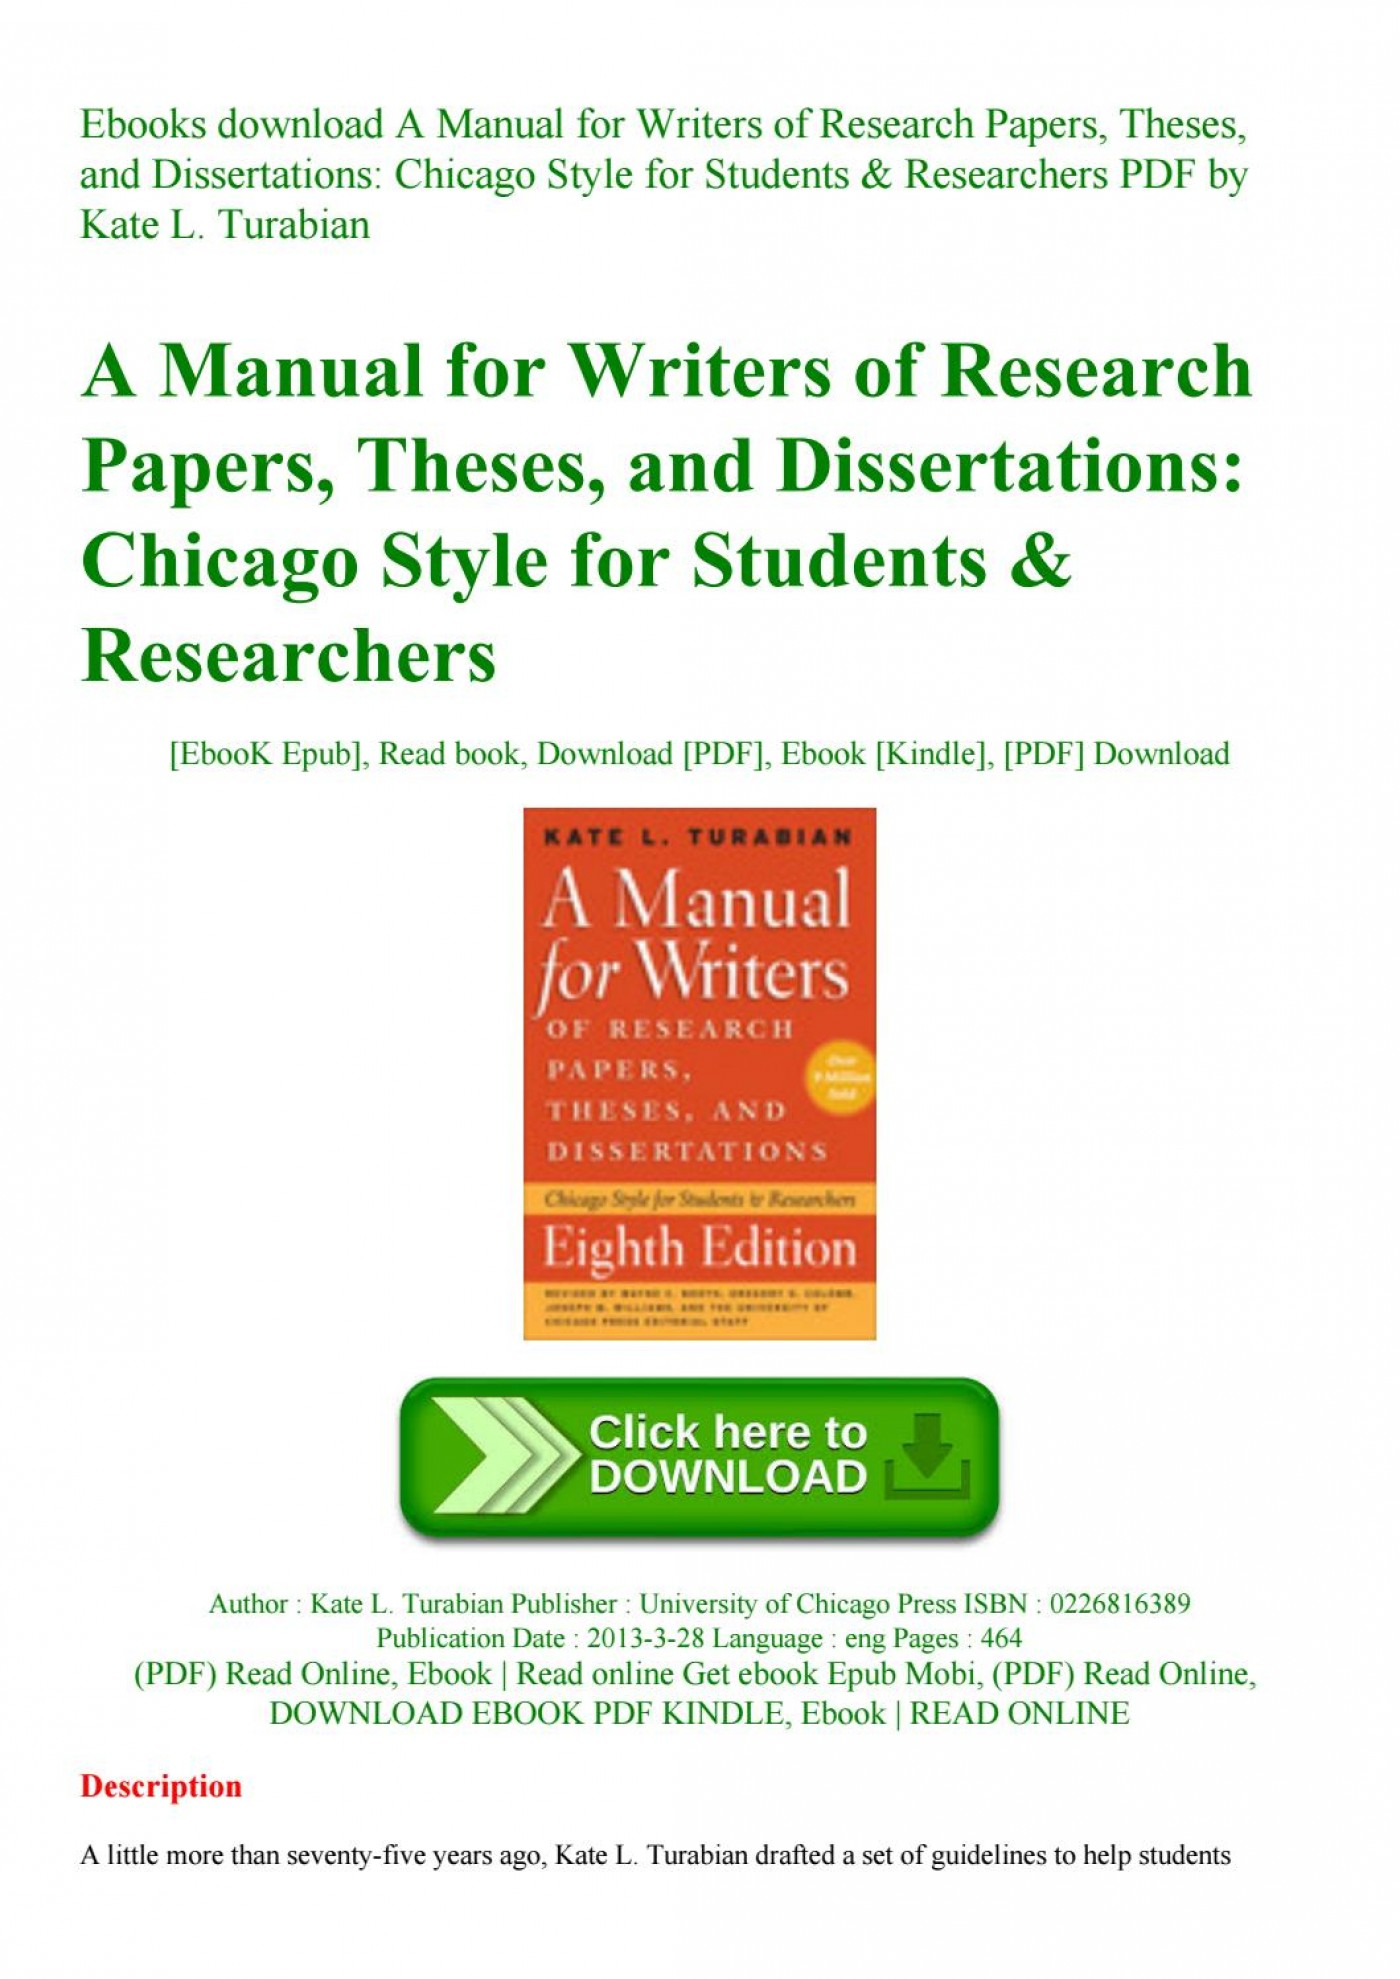 005 Page 1 Manual For Writers Of Researchs Theses And Dissertations Ebook Unbelievable A Research Papers 1400